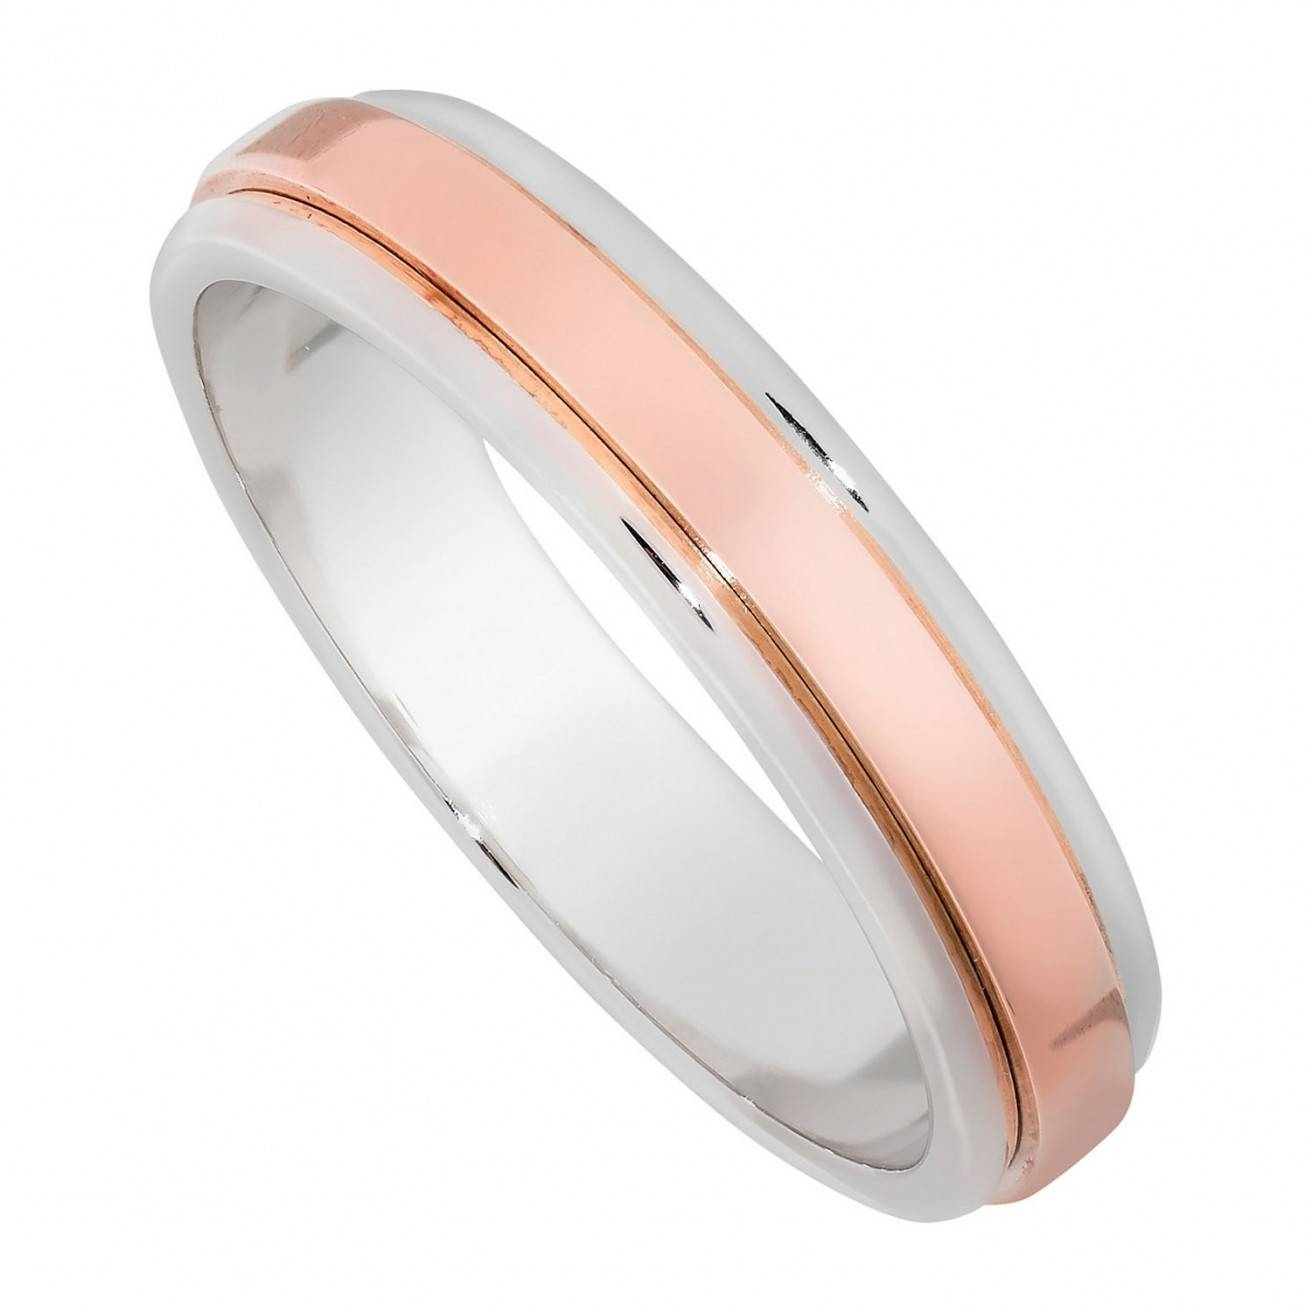 Buy Rose Gold Wedding Rings Online – Fraser Hart With Rose And White Gold Wedding Rings (View 3 of 15)